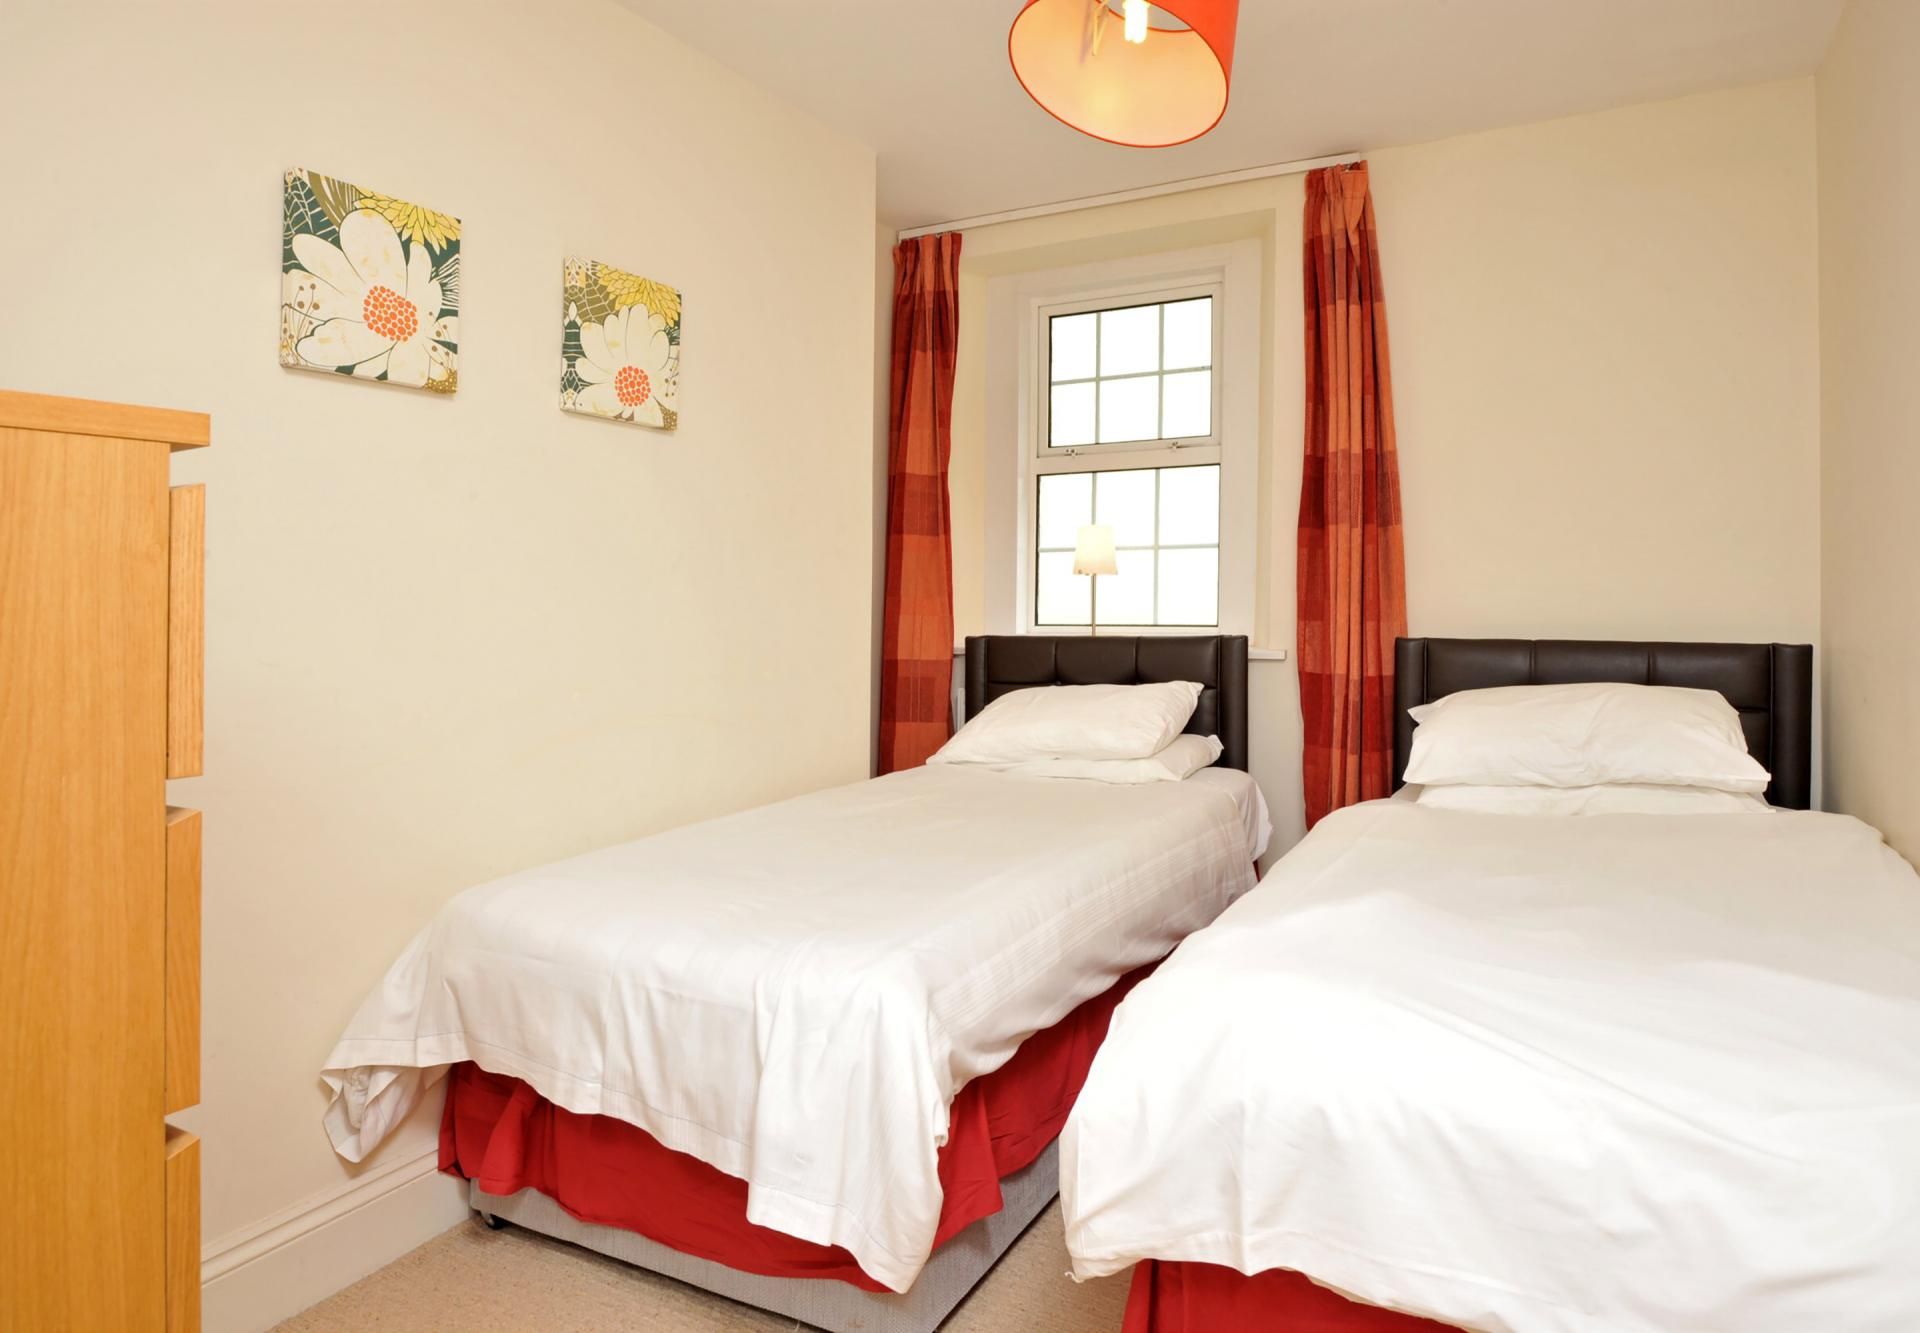 Twin beds at Trinity Mews Apartment, Babbacombe, Torquay - Citybase Apartments